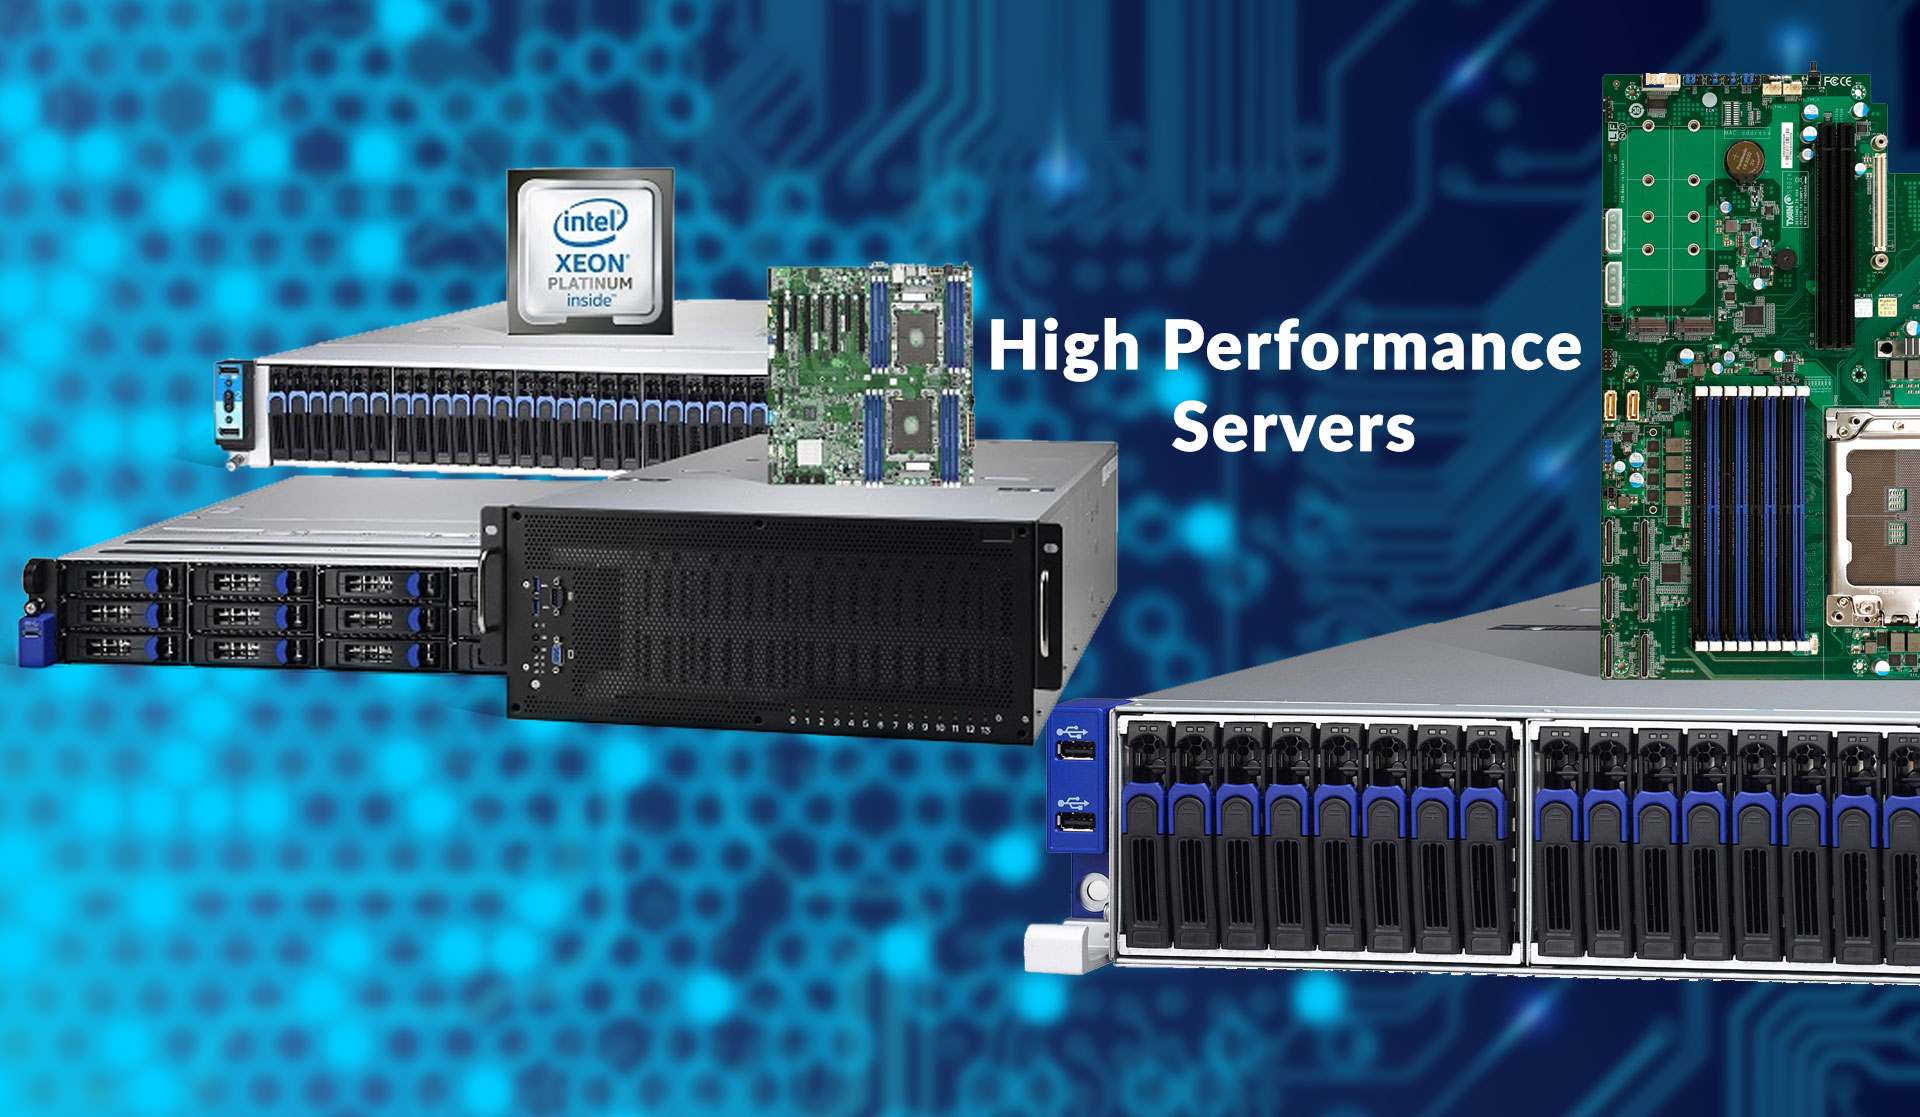 High Performance Servers